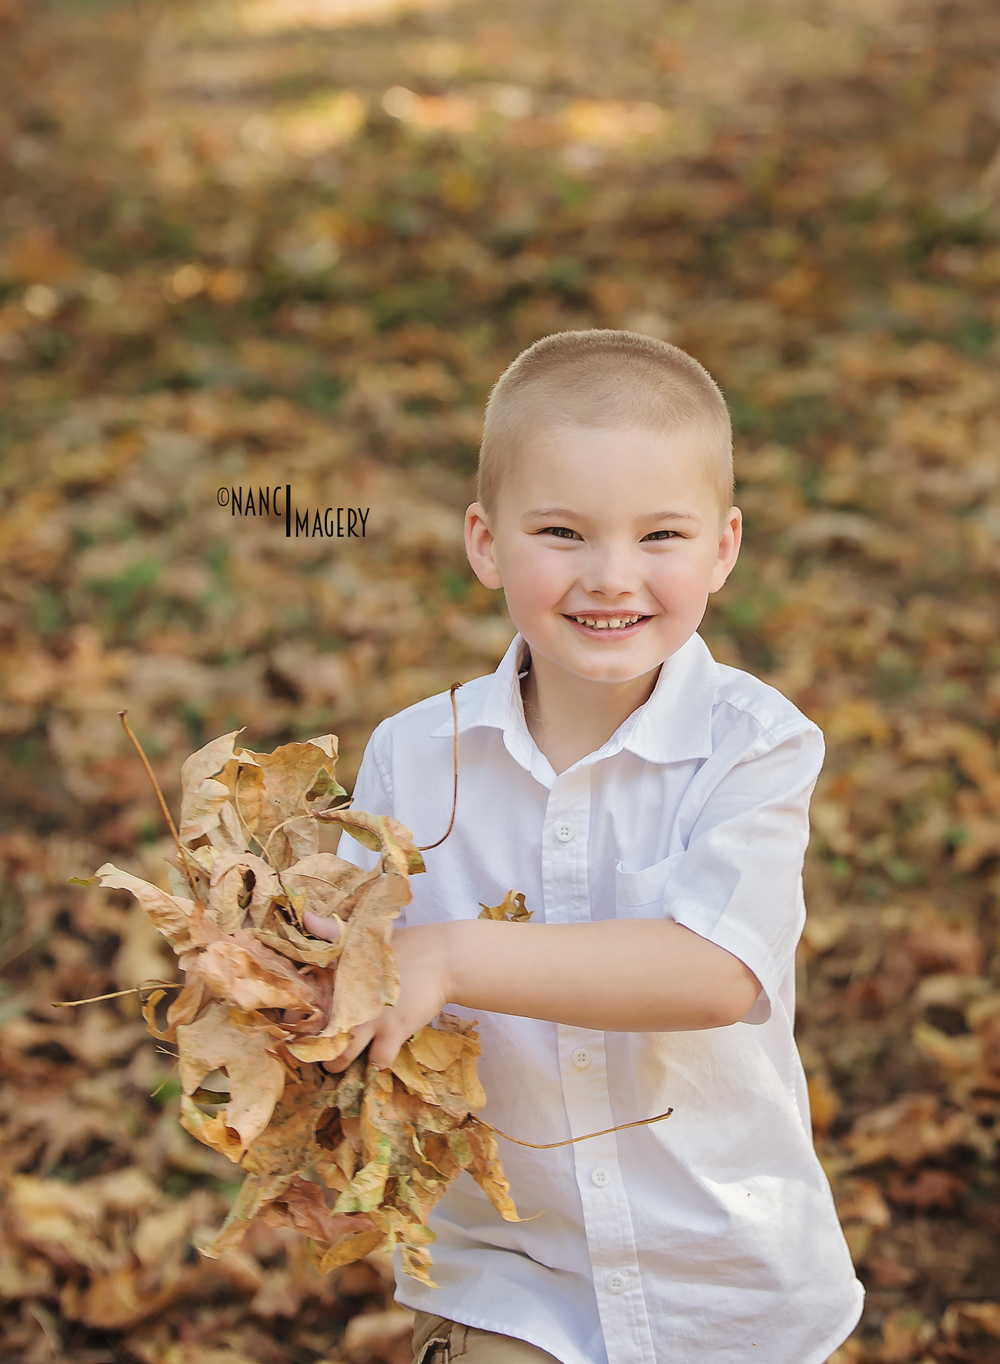 Nanci Imagery Blog, Family session